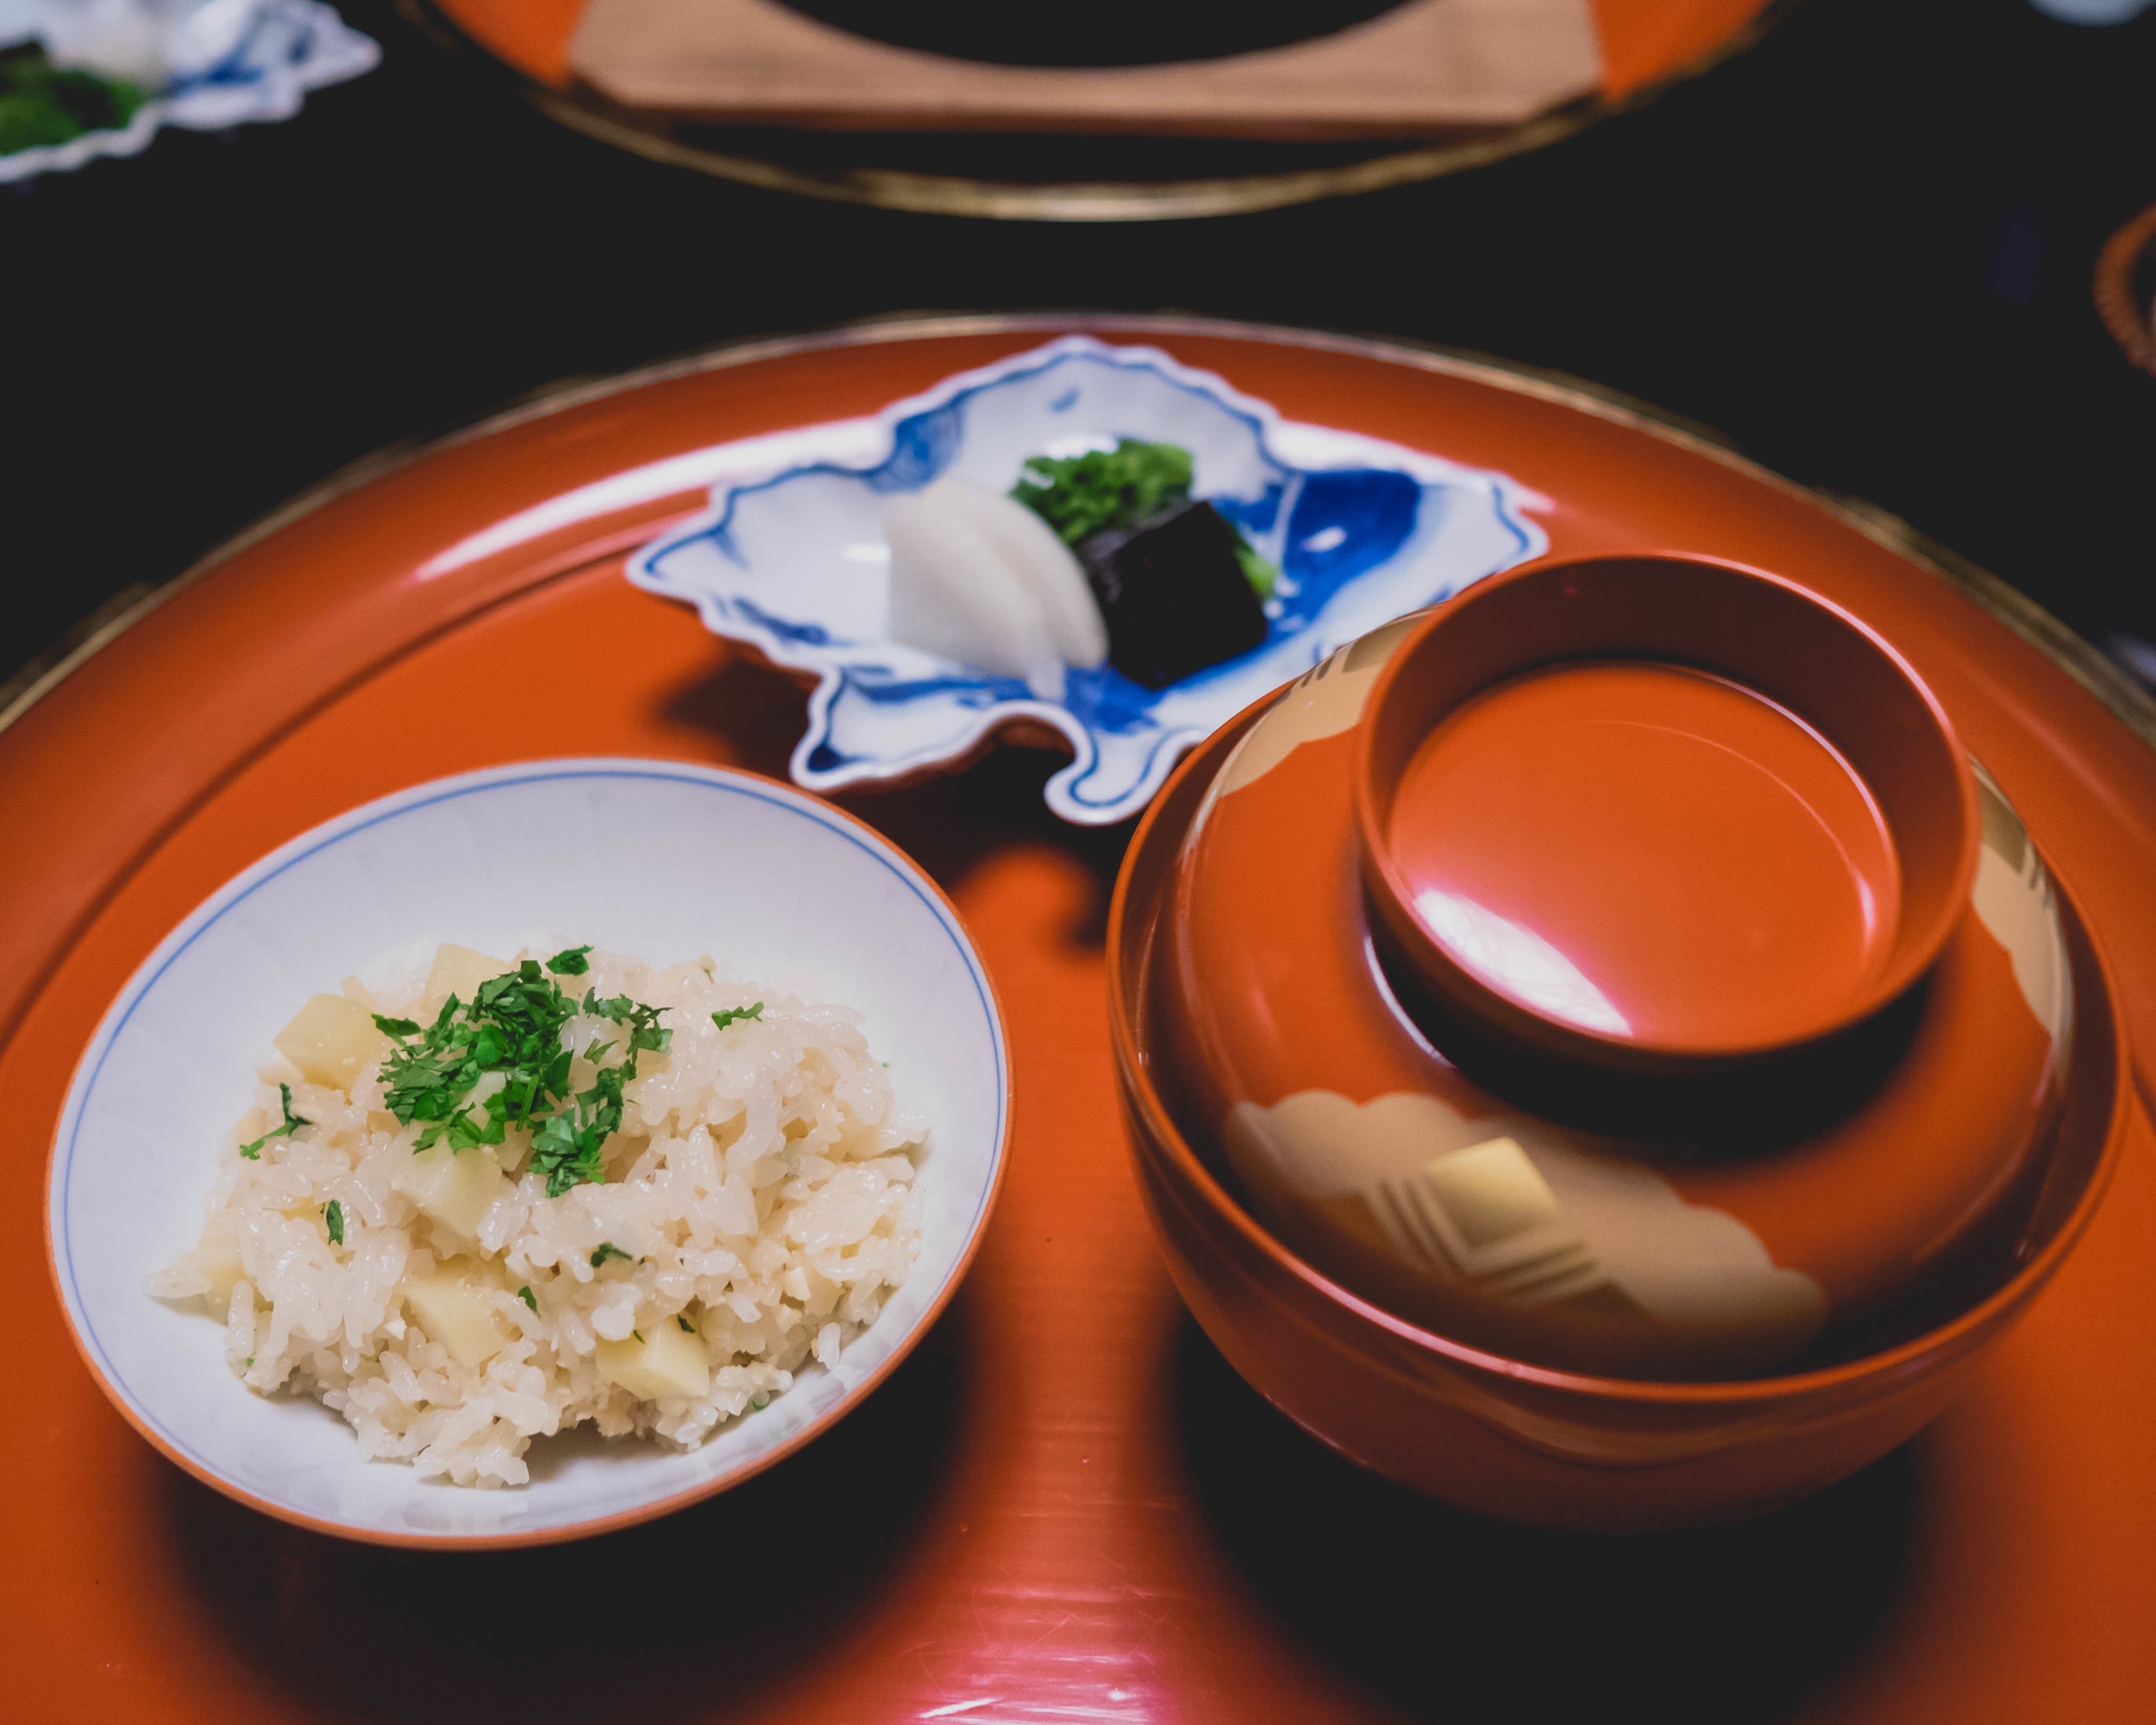 bamboo shoot rice , kinome herb; salt-pickled rapini, pickled daikon radish, salt-cured giant kelp.